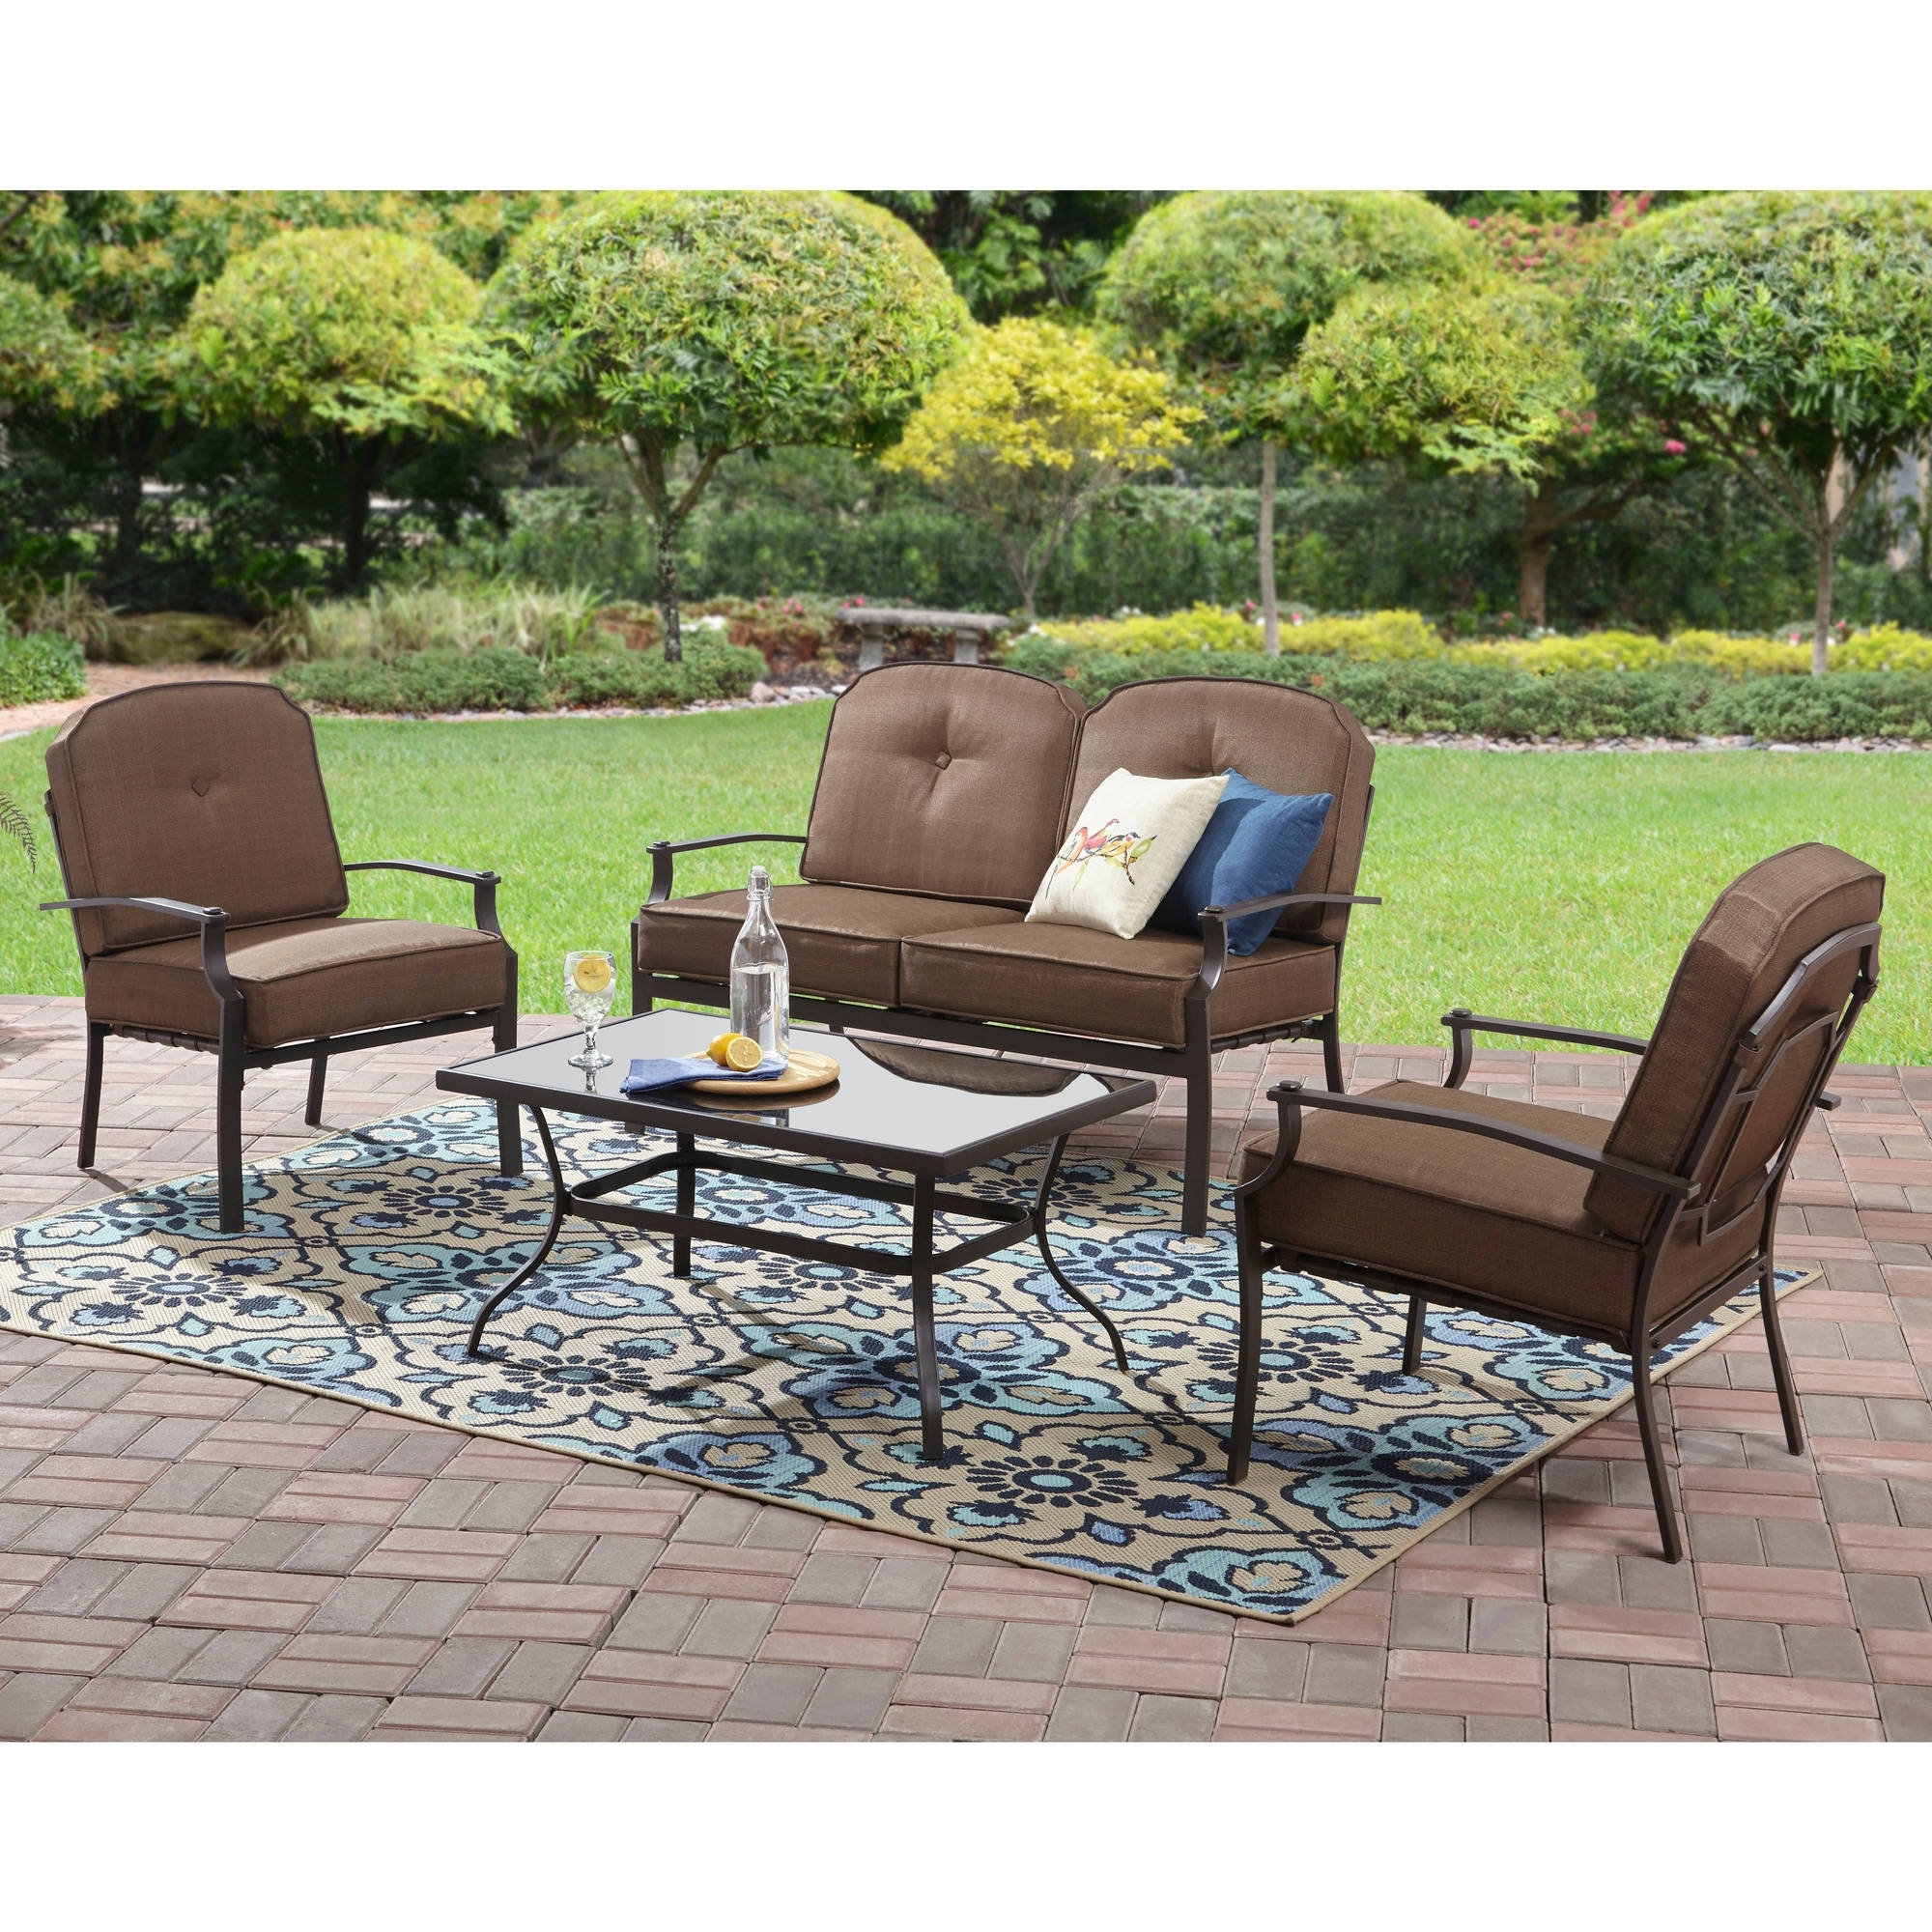 Mainstays Spring Creek 5 Piece Patio Dining Set, Seats 4 – Walmart With Well Known Dot Patio Conversation Sets (View 10 of 15)